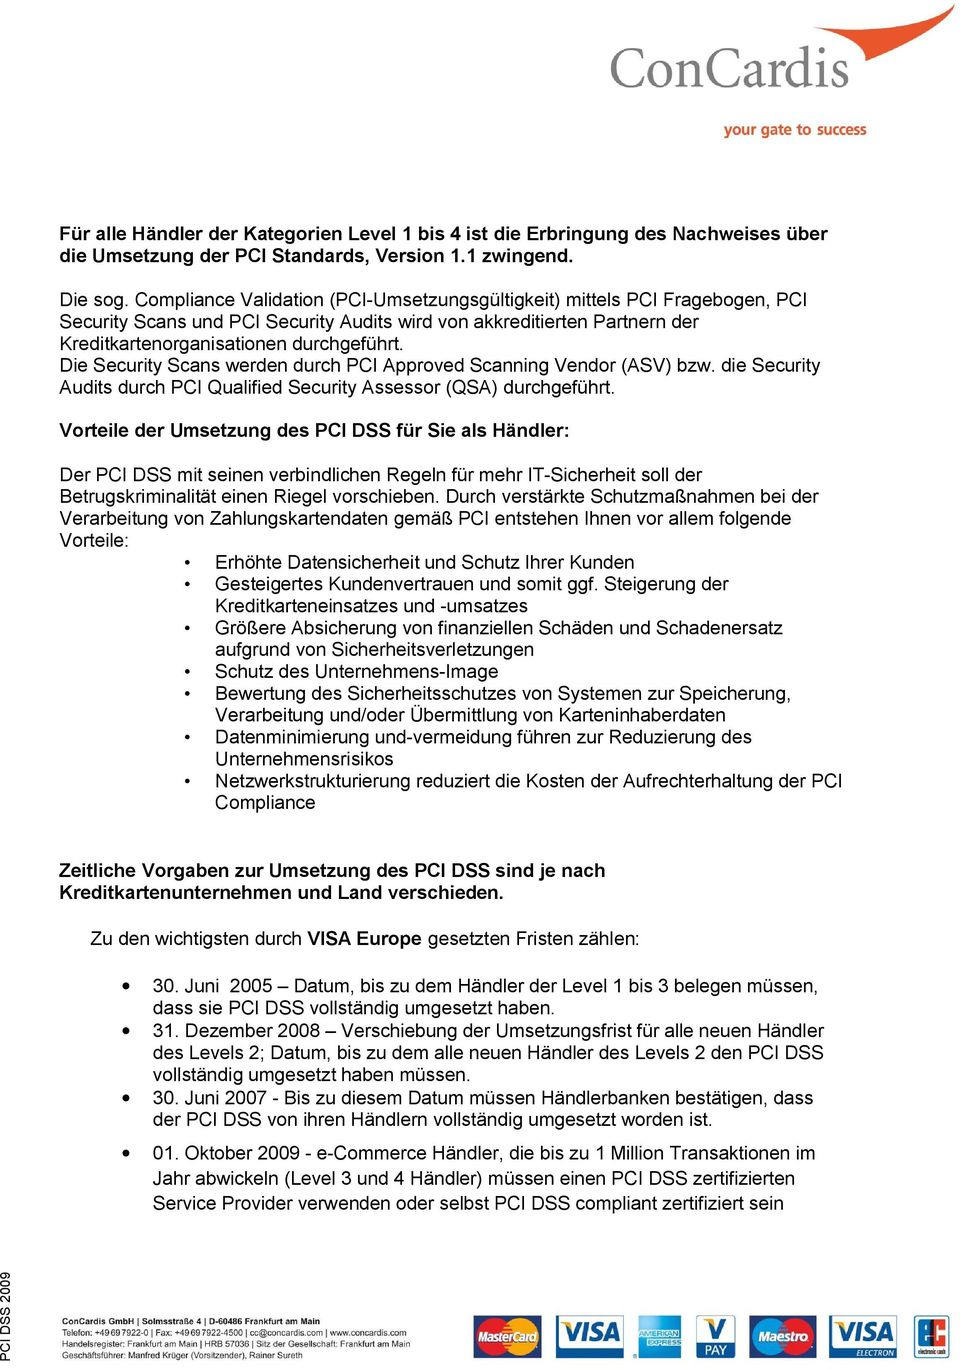 Die Security Scans werden durch PCI Approved Scanning Vendor (ASV) bzw. die Security Audits durch PCI Qualified Security Assessor (QSA) durchgeführt.